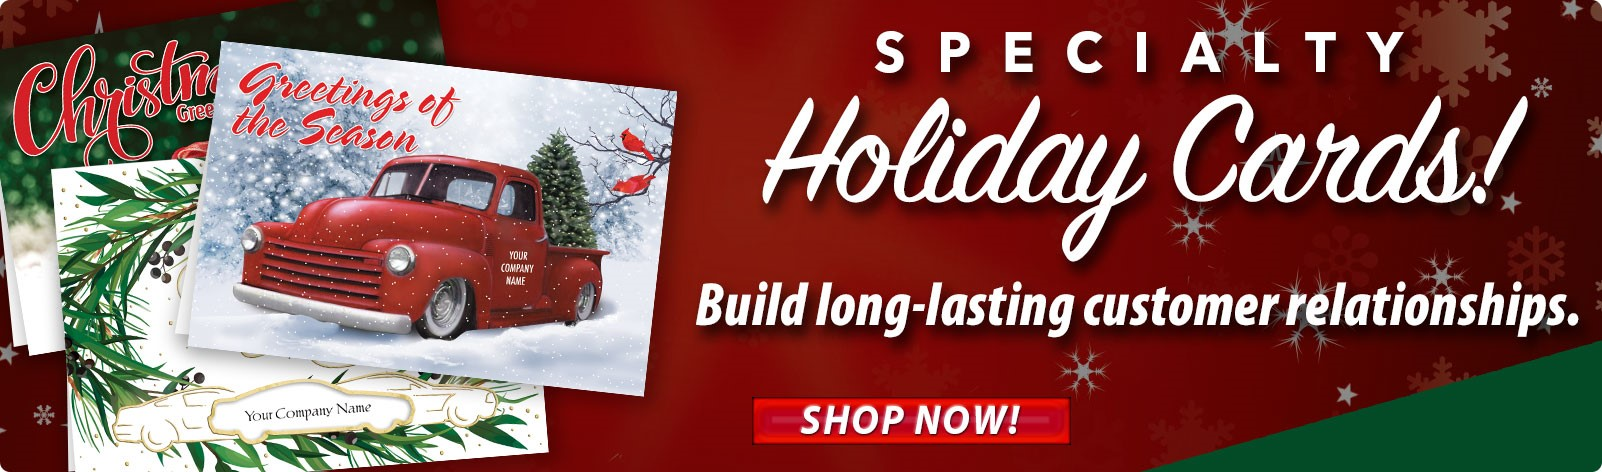 Specialty Holiday Cards - Build long-lasting customer relationships.